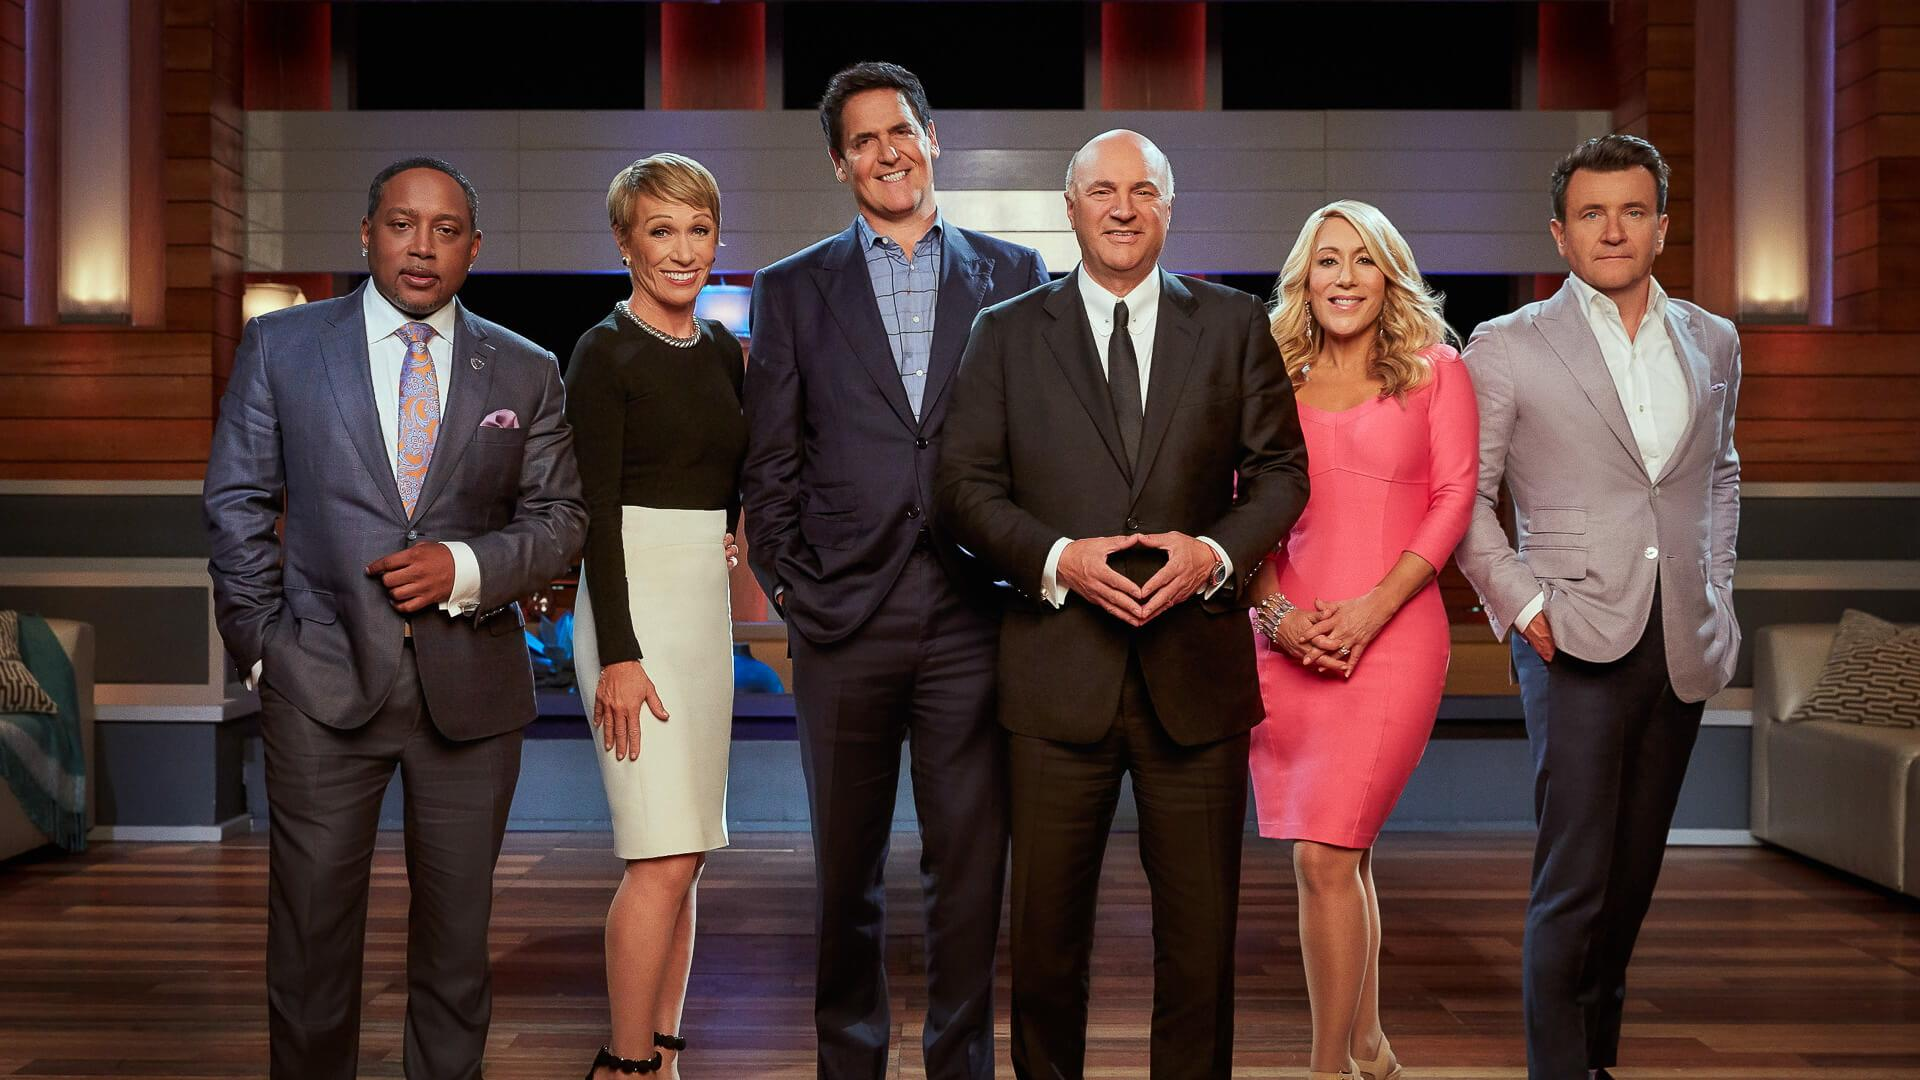 Stars of 'Shark Tank' Share 50 Lessons for Small-Business Owners